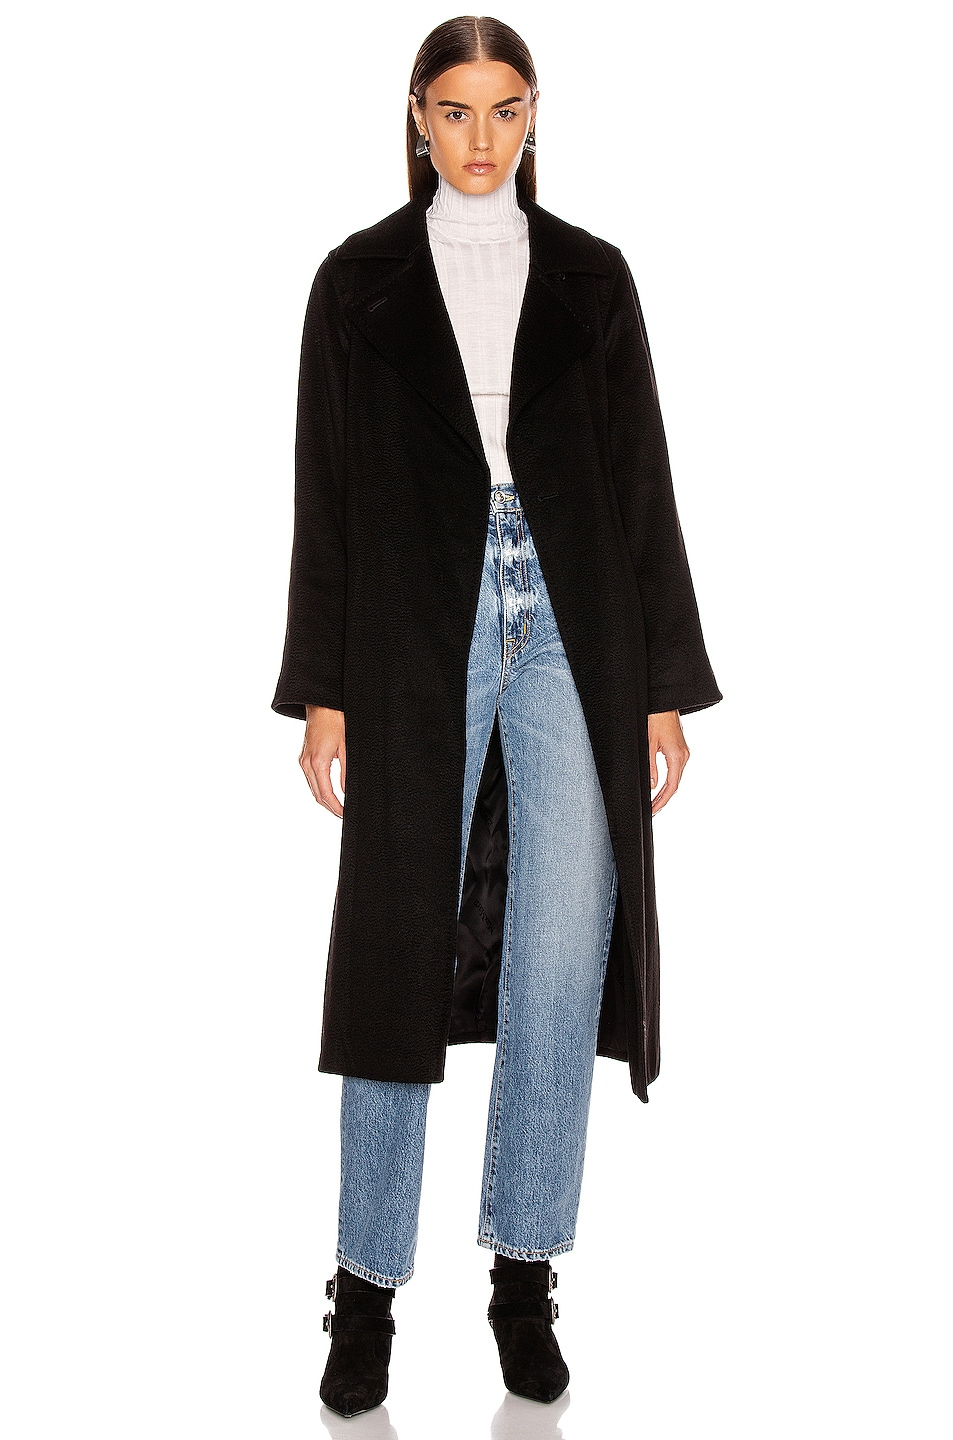 Image 1 of Max Mara Manuel Coat in Black